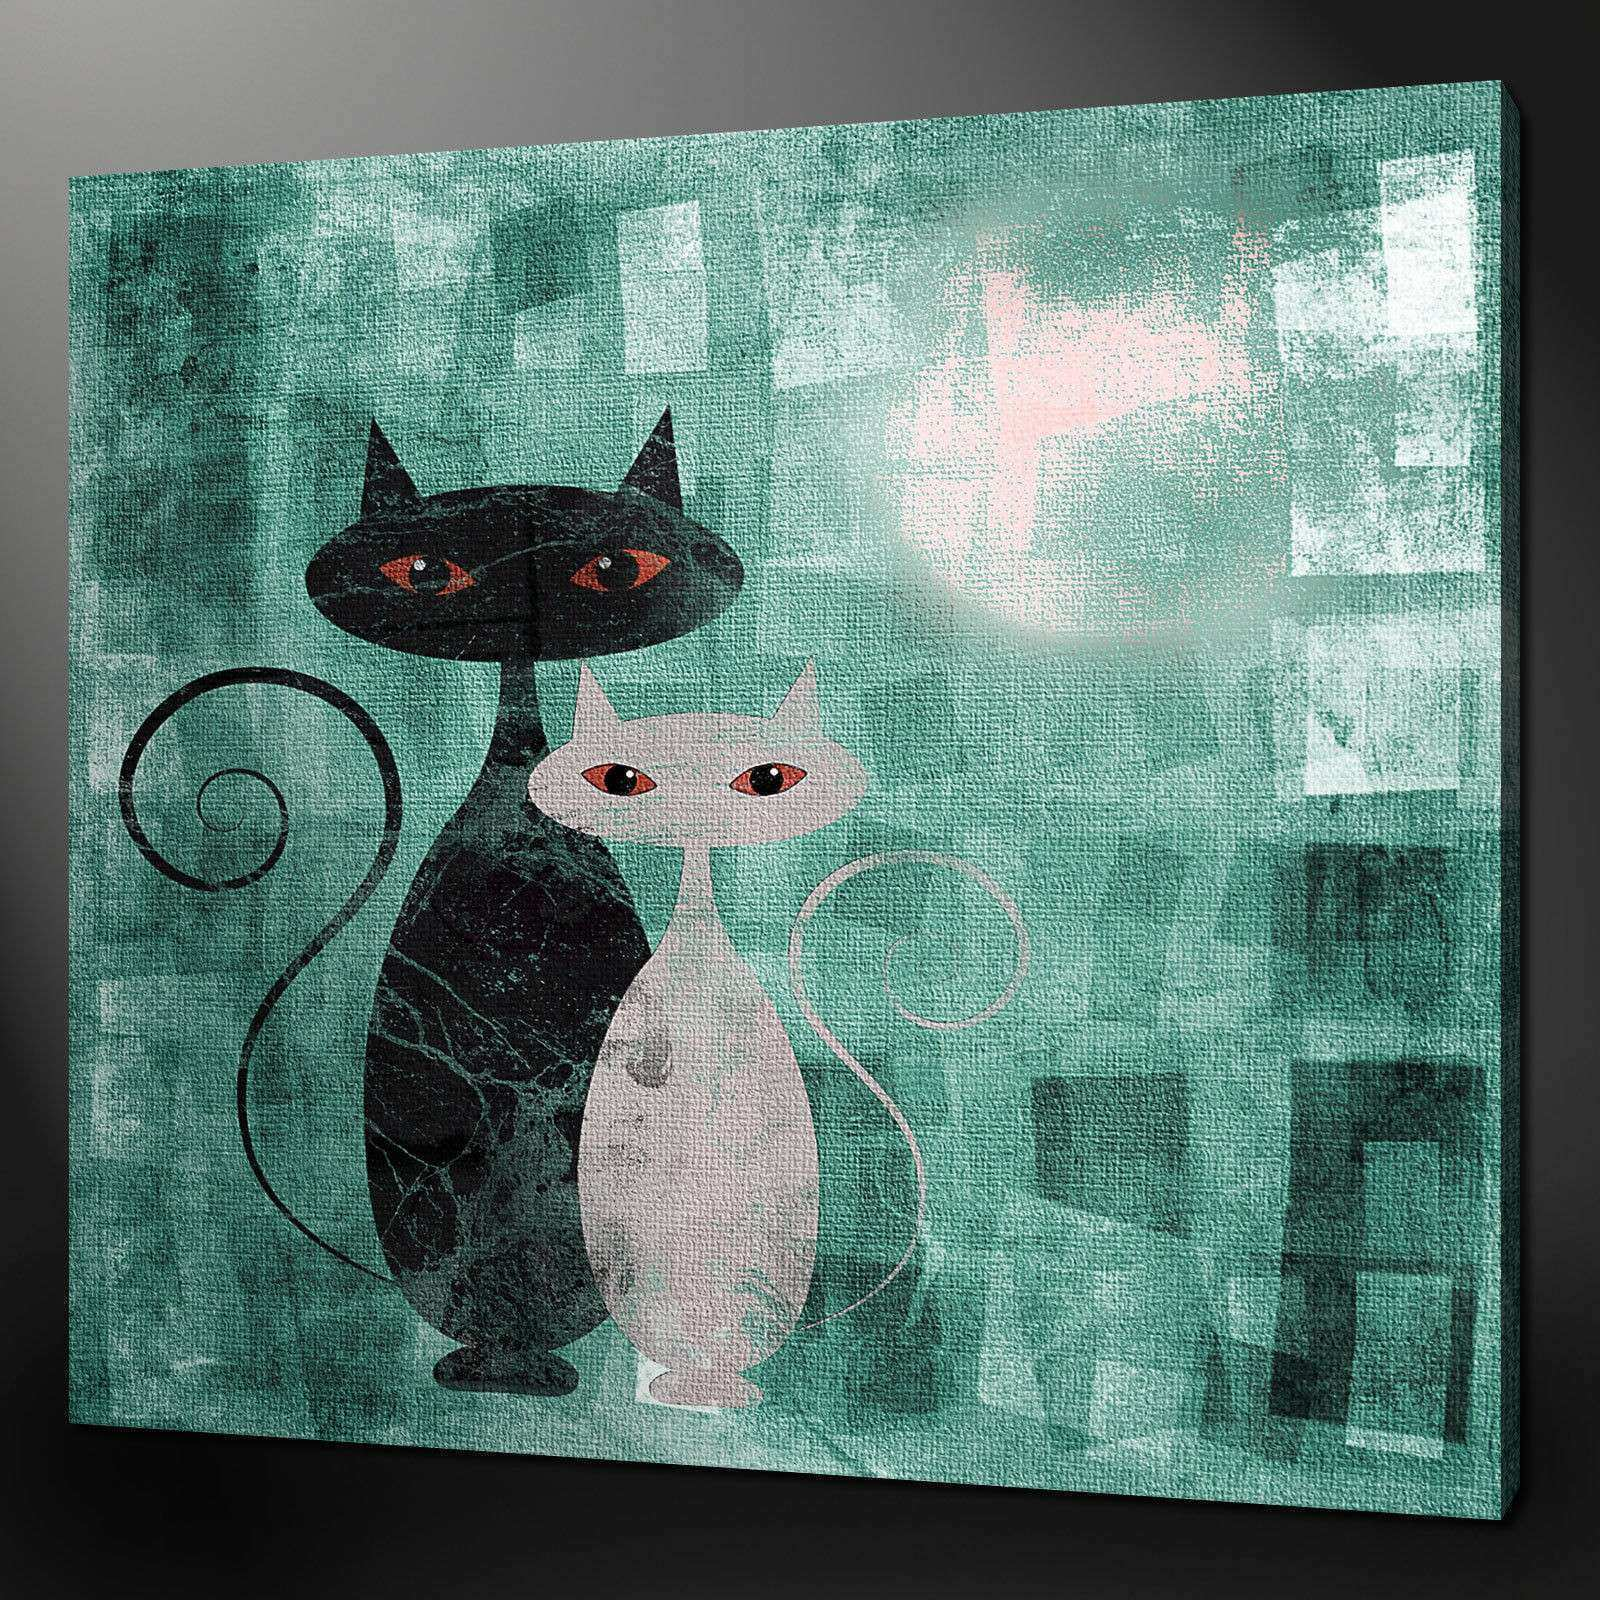 CATS ART DECO TEAL AQUA CANVAS WALL ART PICTURES PRINTS 24